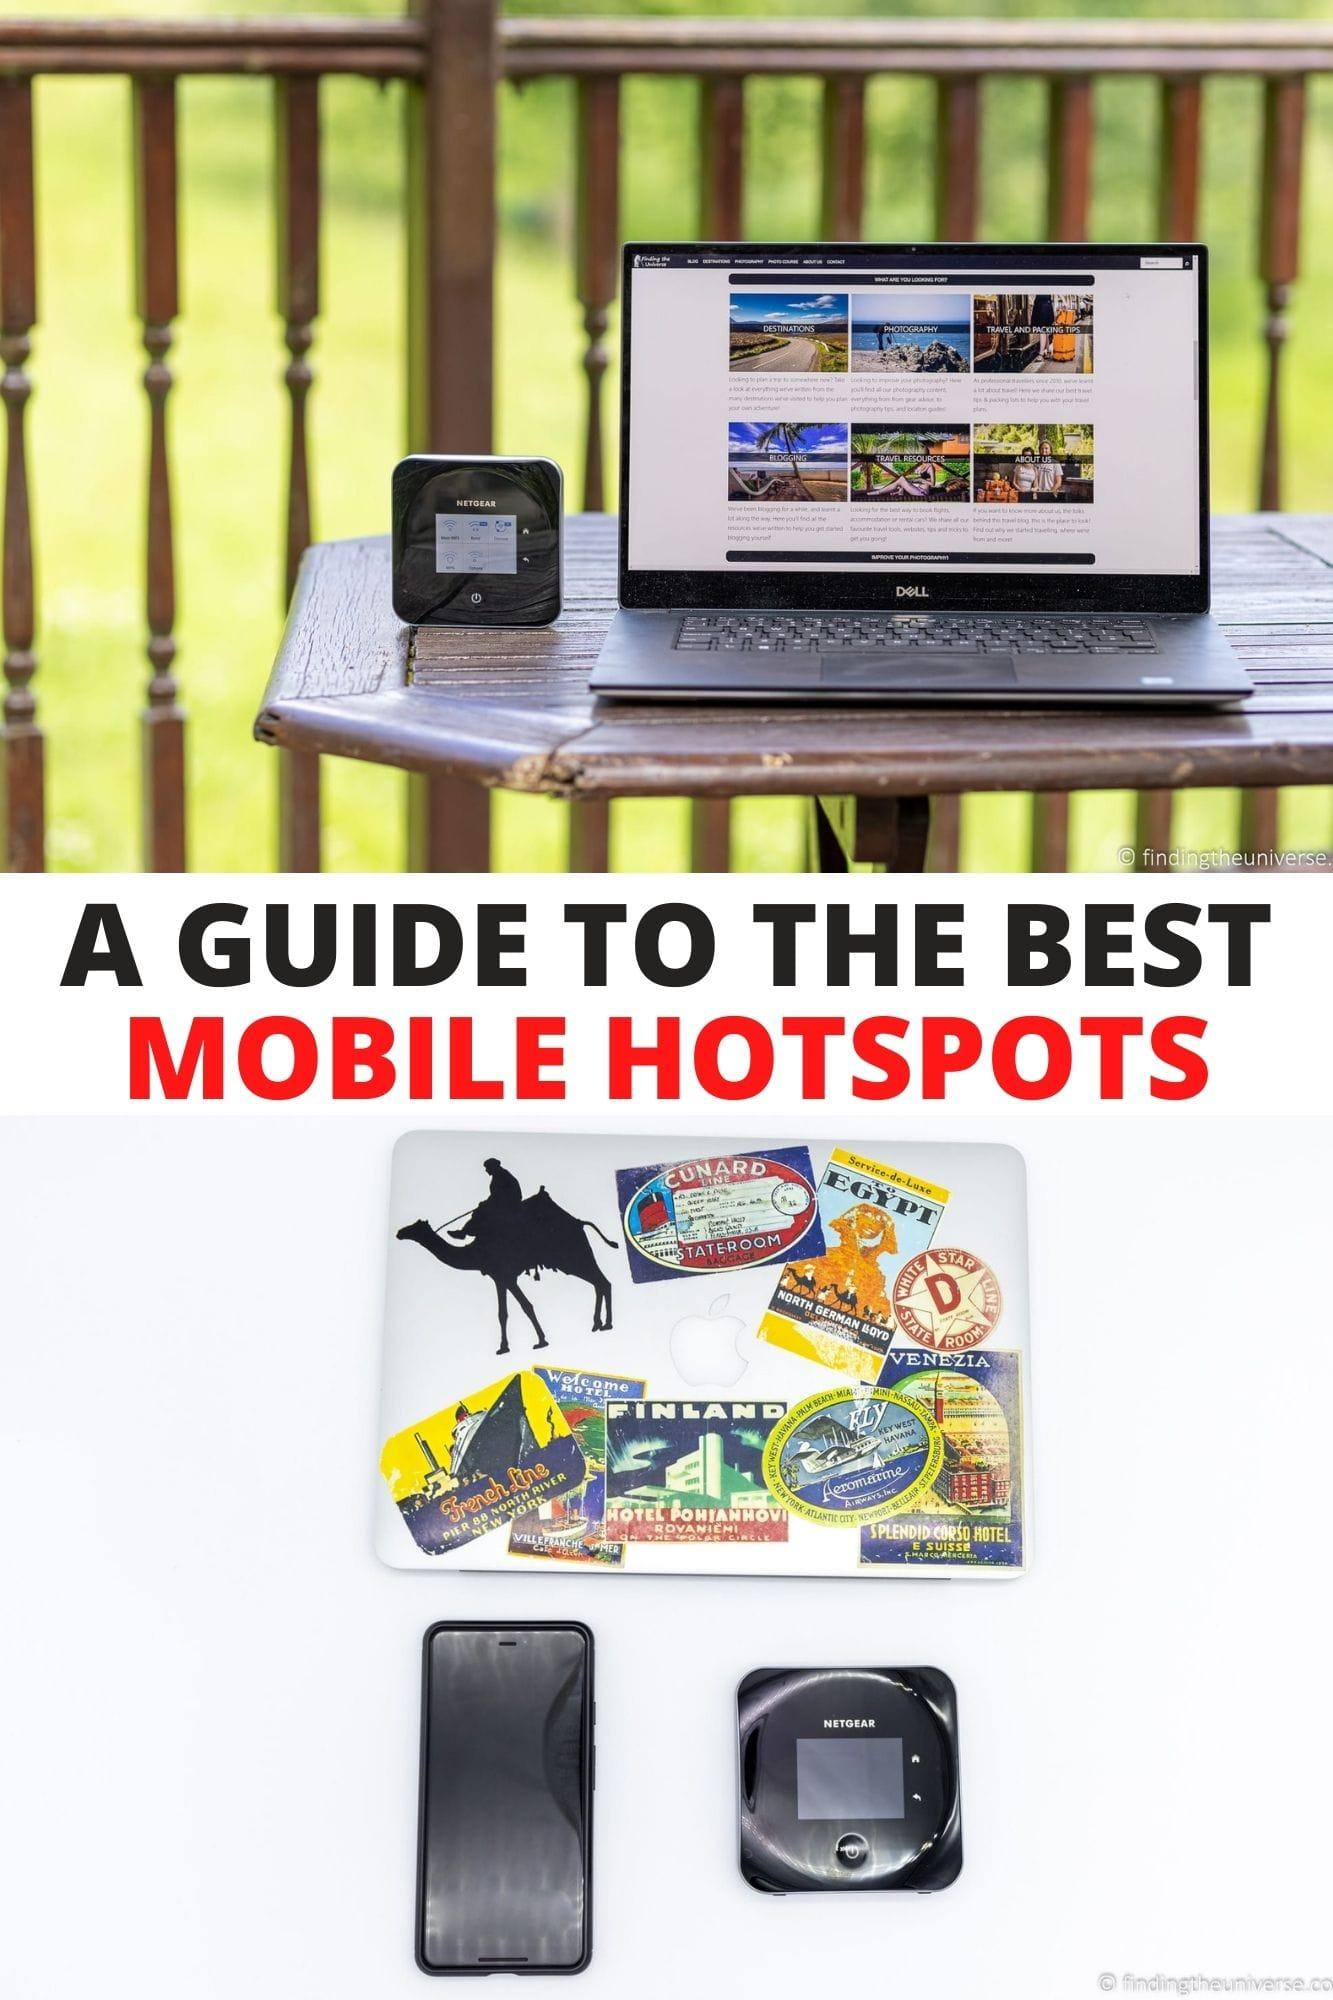 Looking for a mobile hotspot to help you get online? We cover everything you need to know, and round up the best mobile hotspots out there!